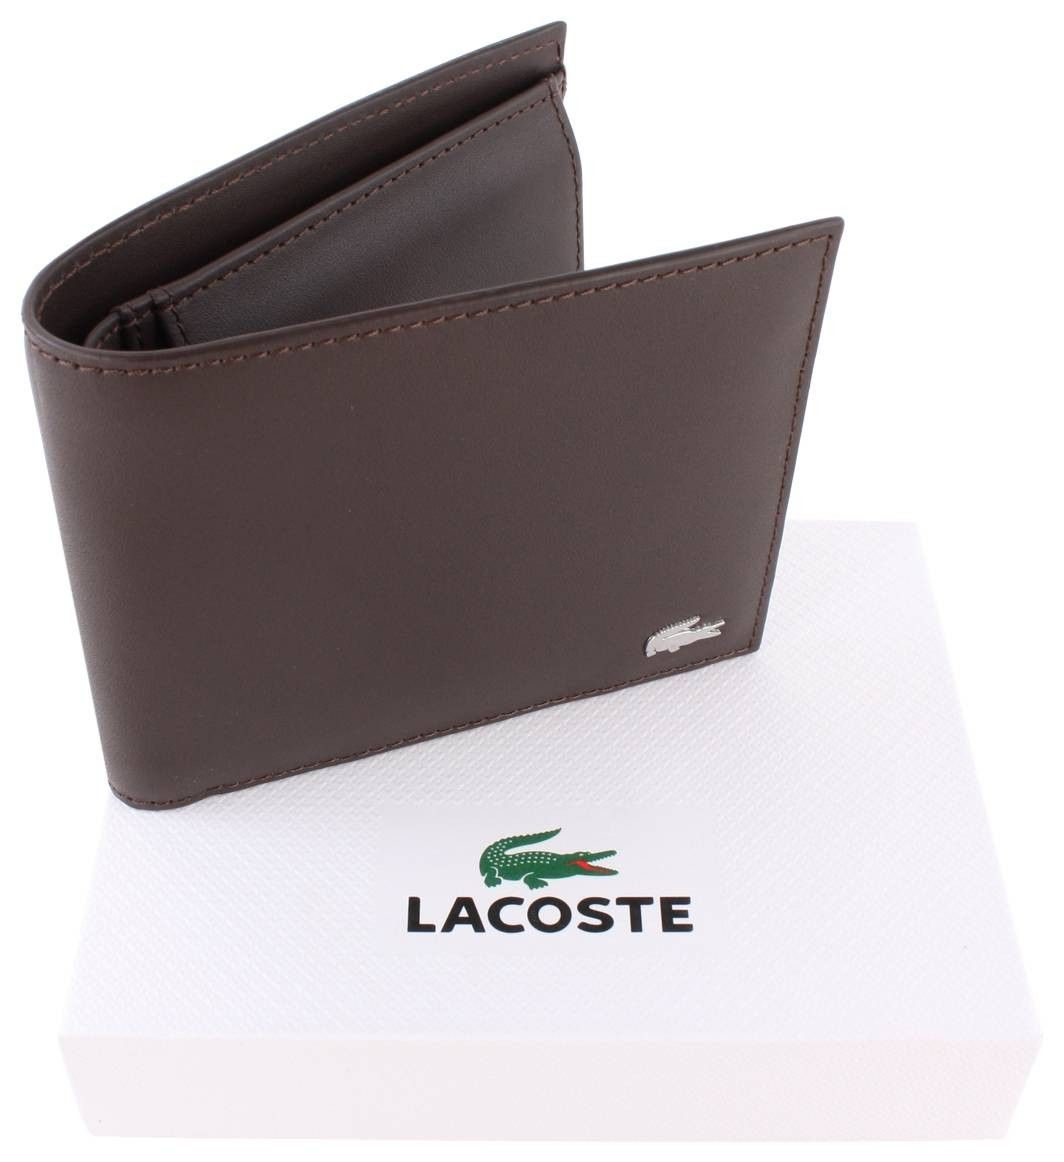 0a3bfebae Lacoste Large Billfold and Coin Wallet - Dark Brown